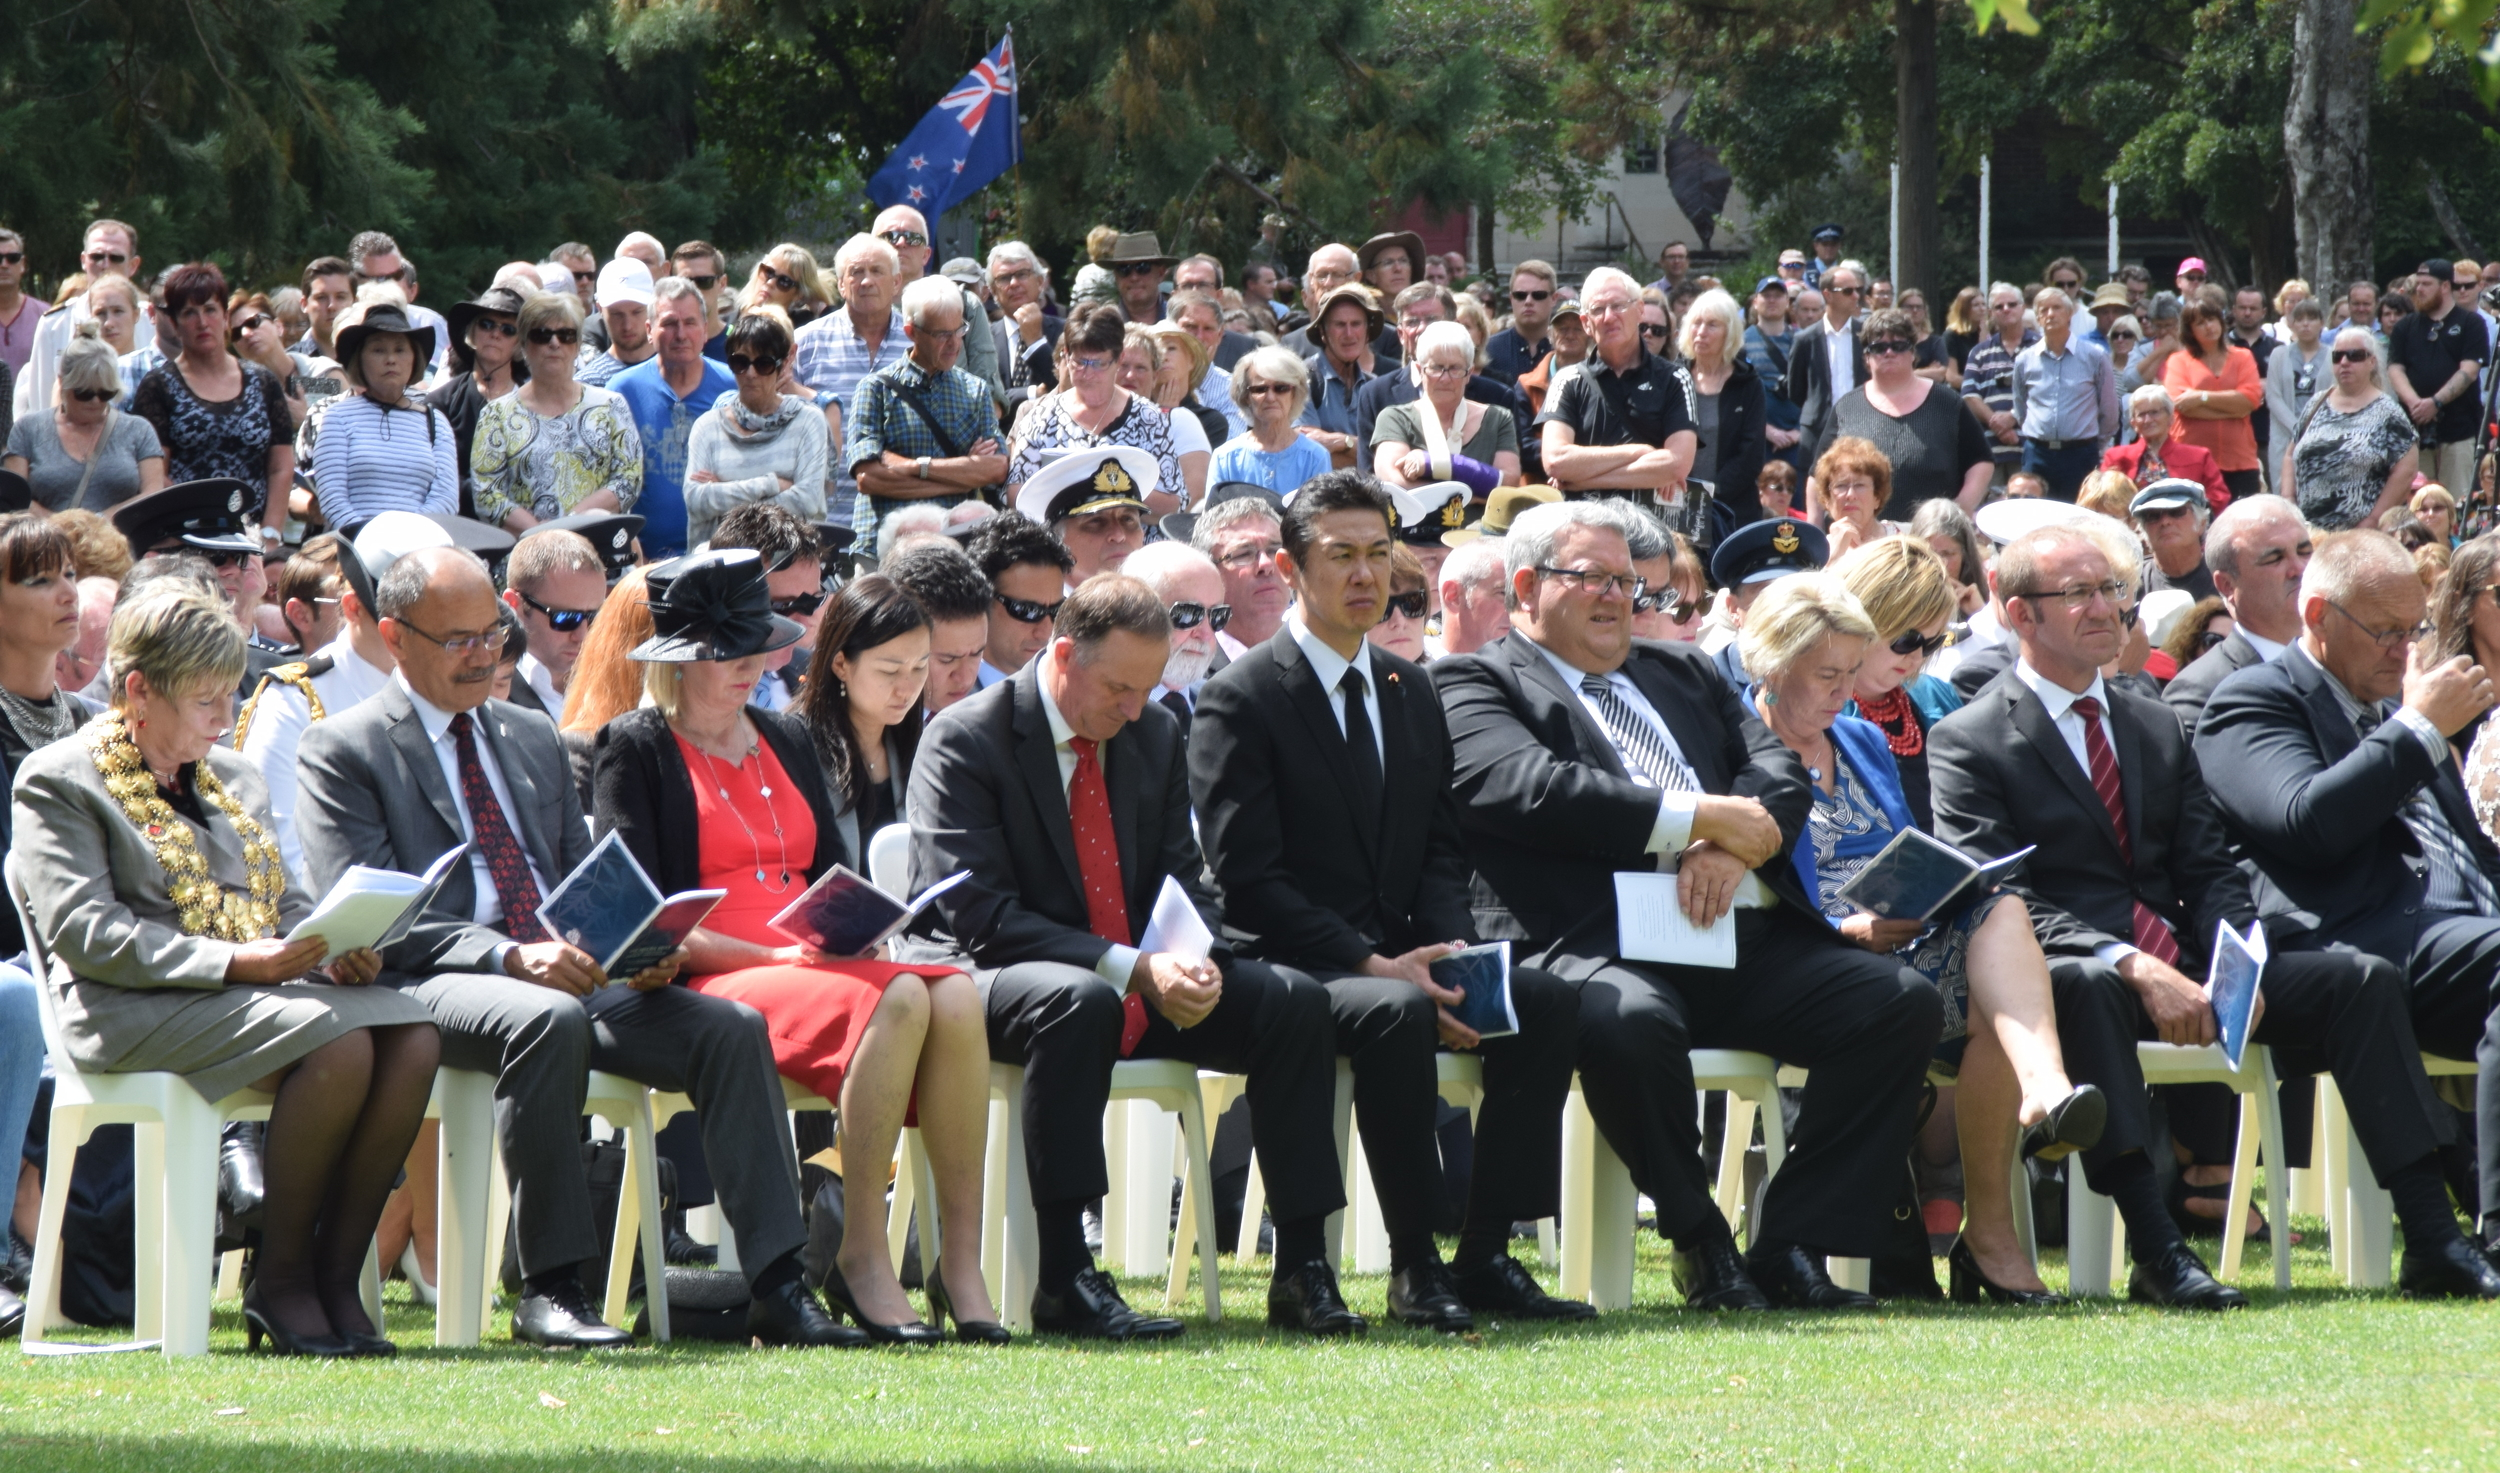 Country's political who's who were in attendance at the Civic Memorial Service